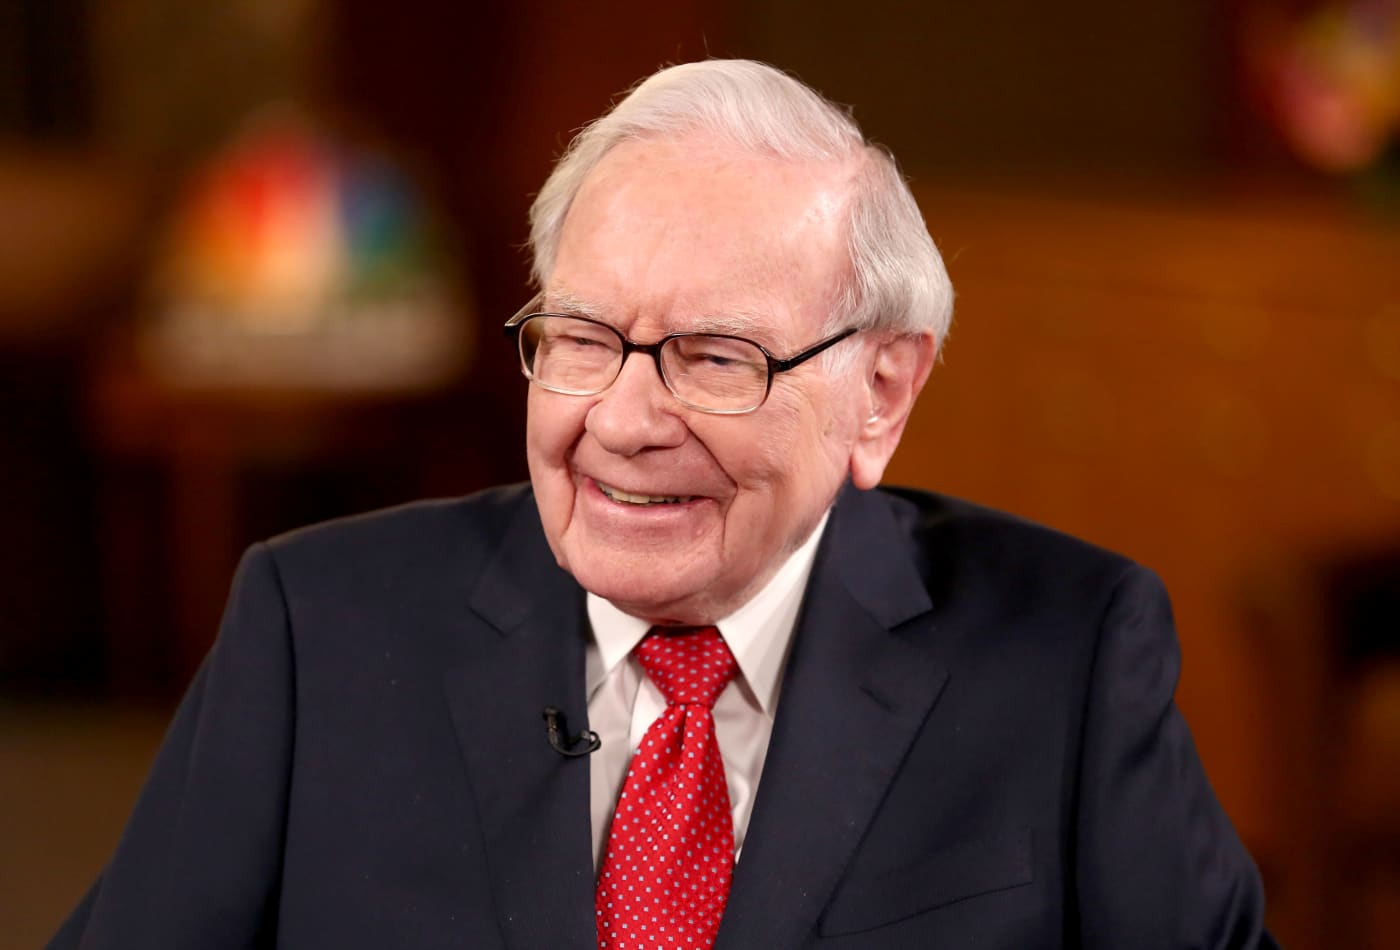 Warren Buffett giving away another $2.9 billion, bringing total donations since 2006 to $37 billion